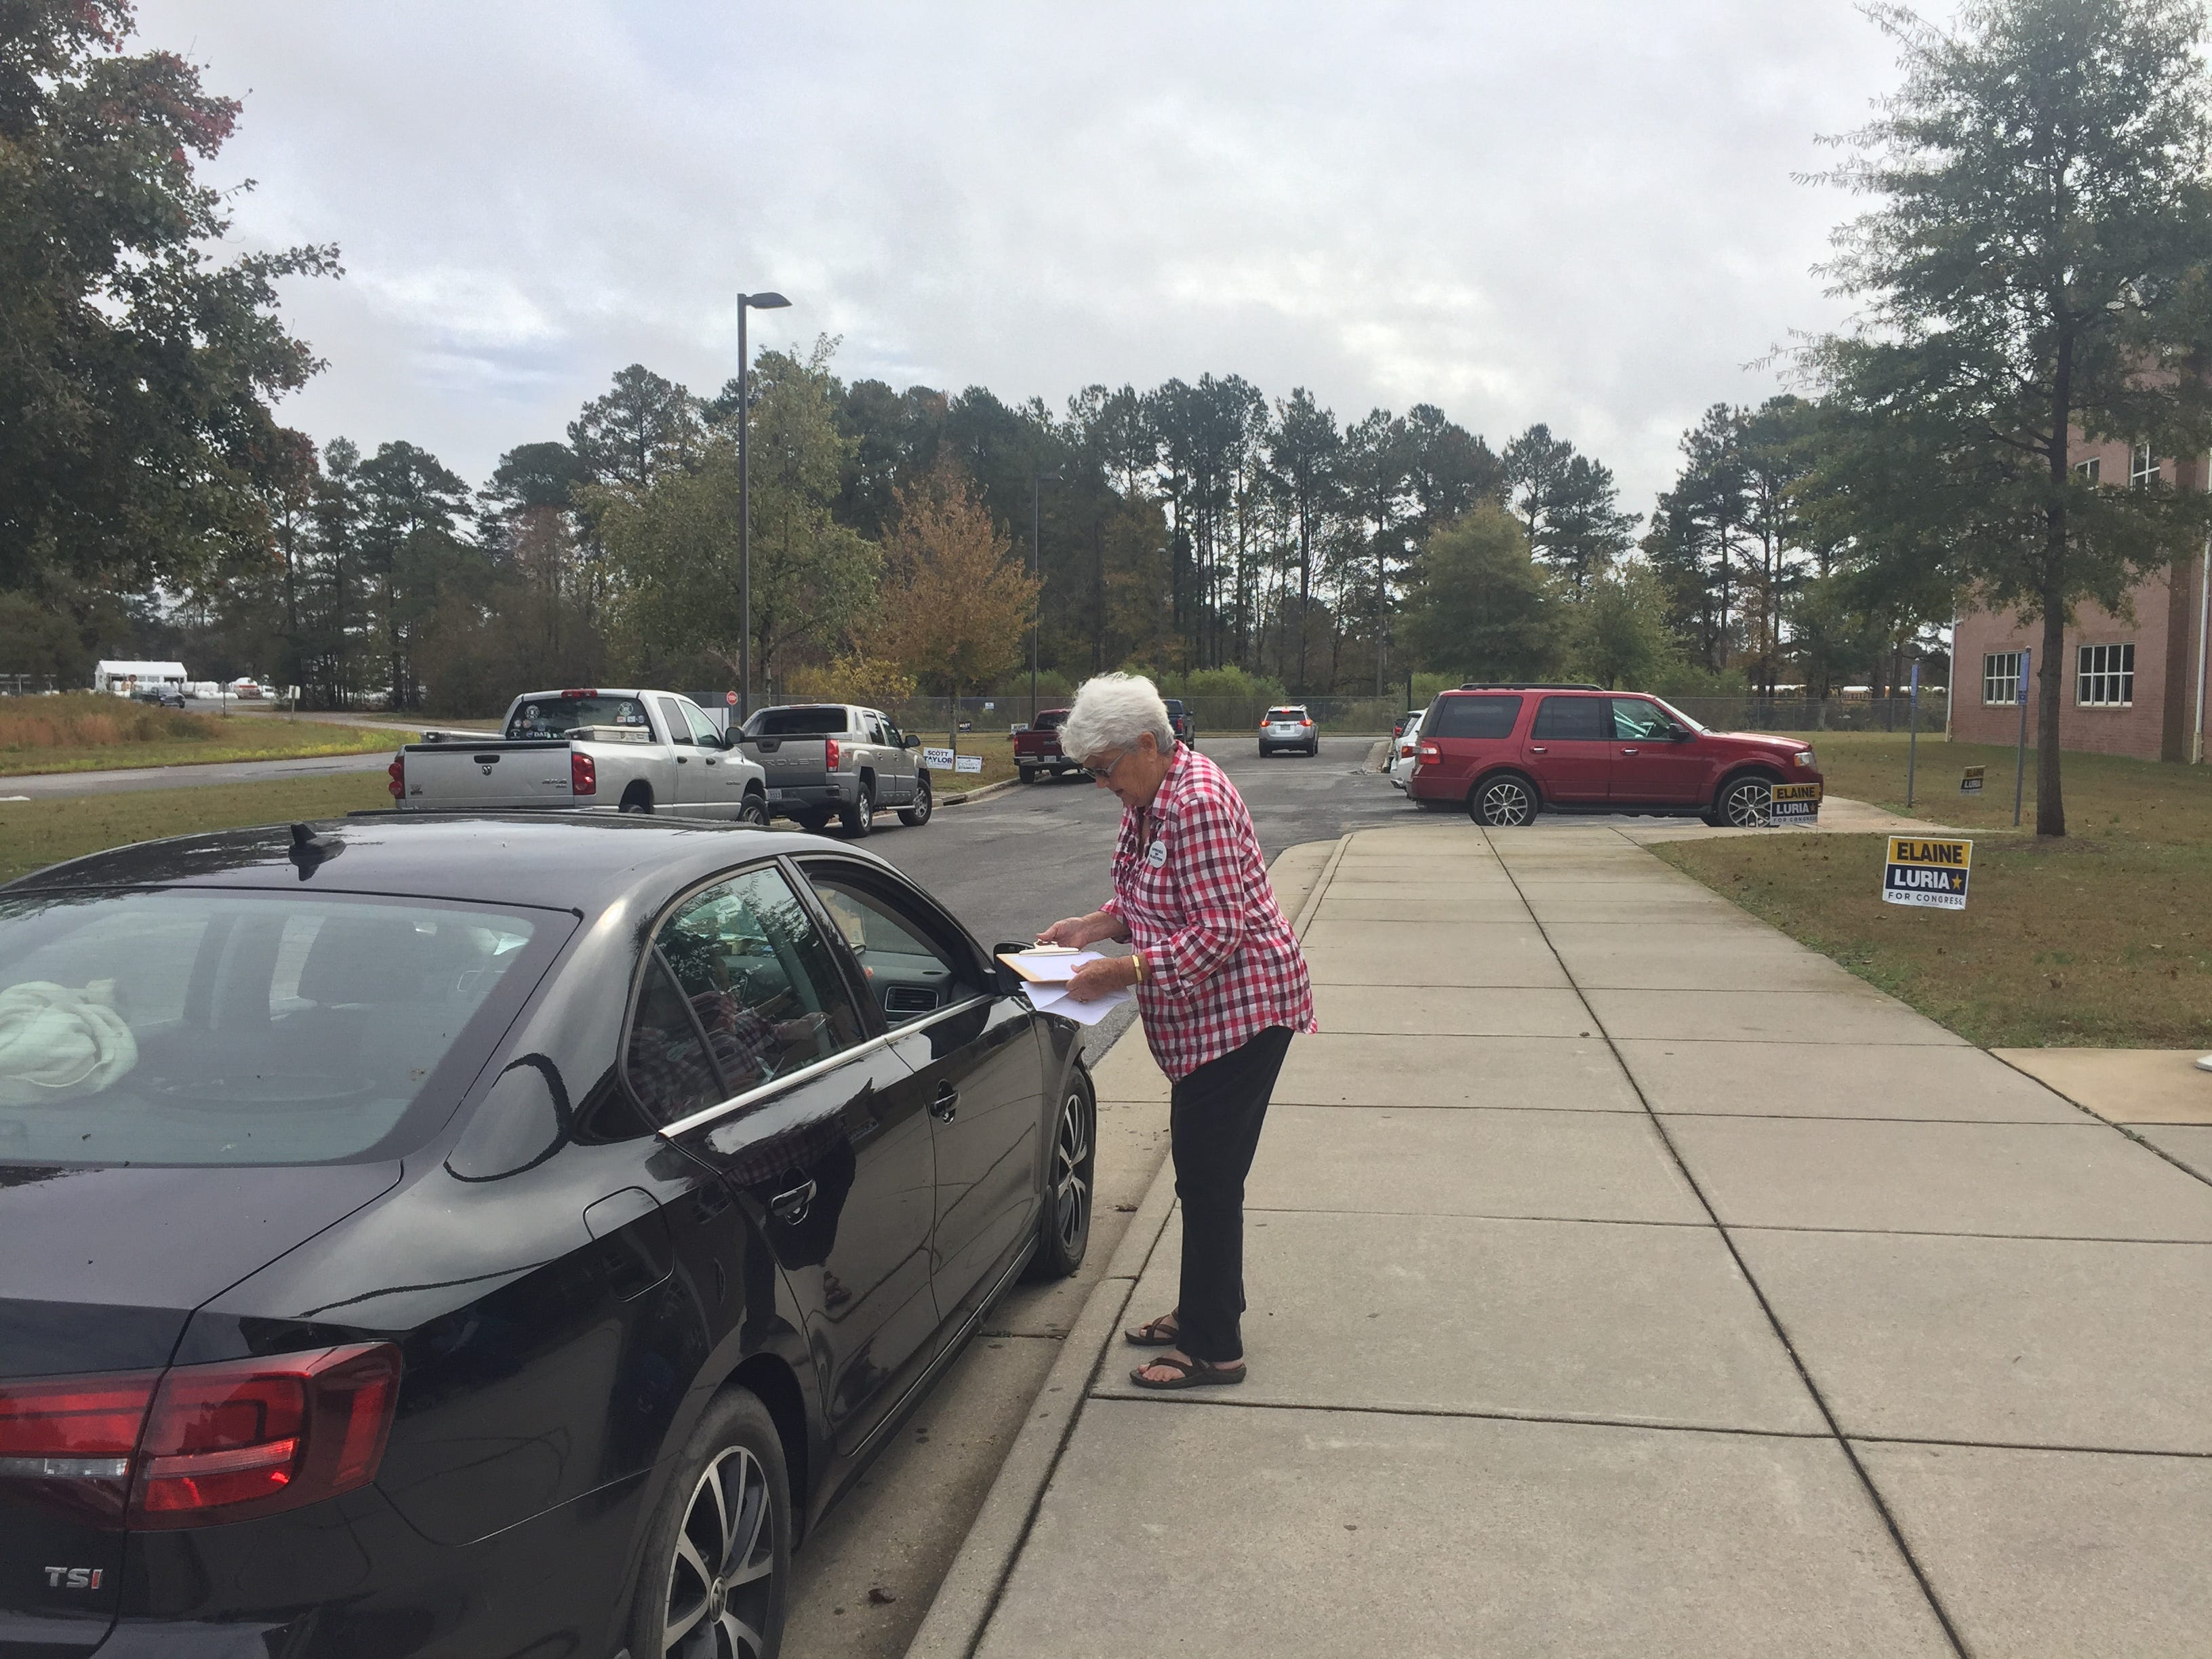 Election officer Peggy Brown assists a voter to cast a ballot at the curbside at Nandua Middle School in Onley, Virginia on Tuesday, Nov. 6, 2018.